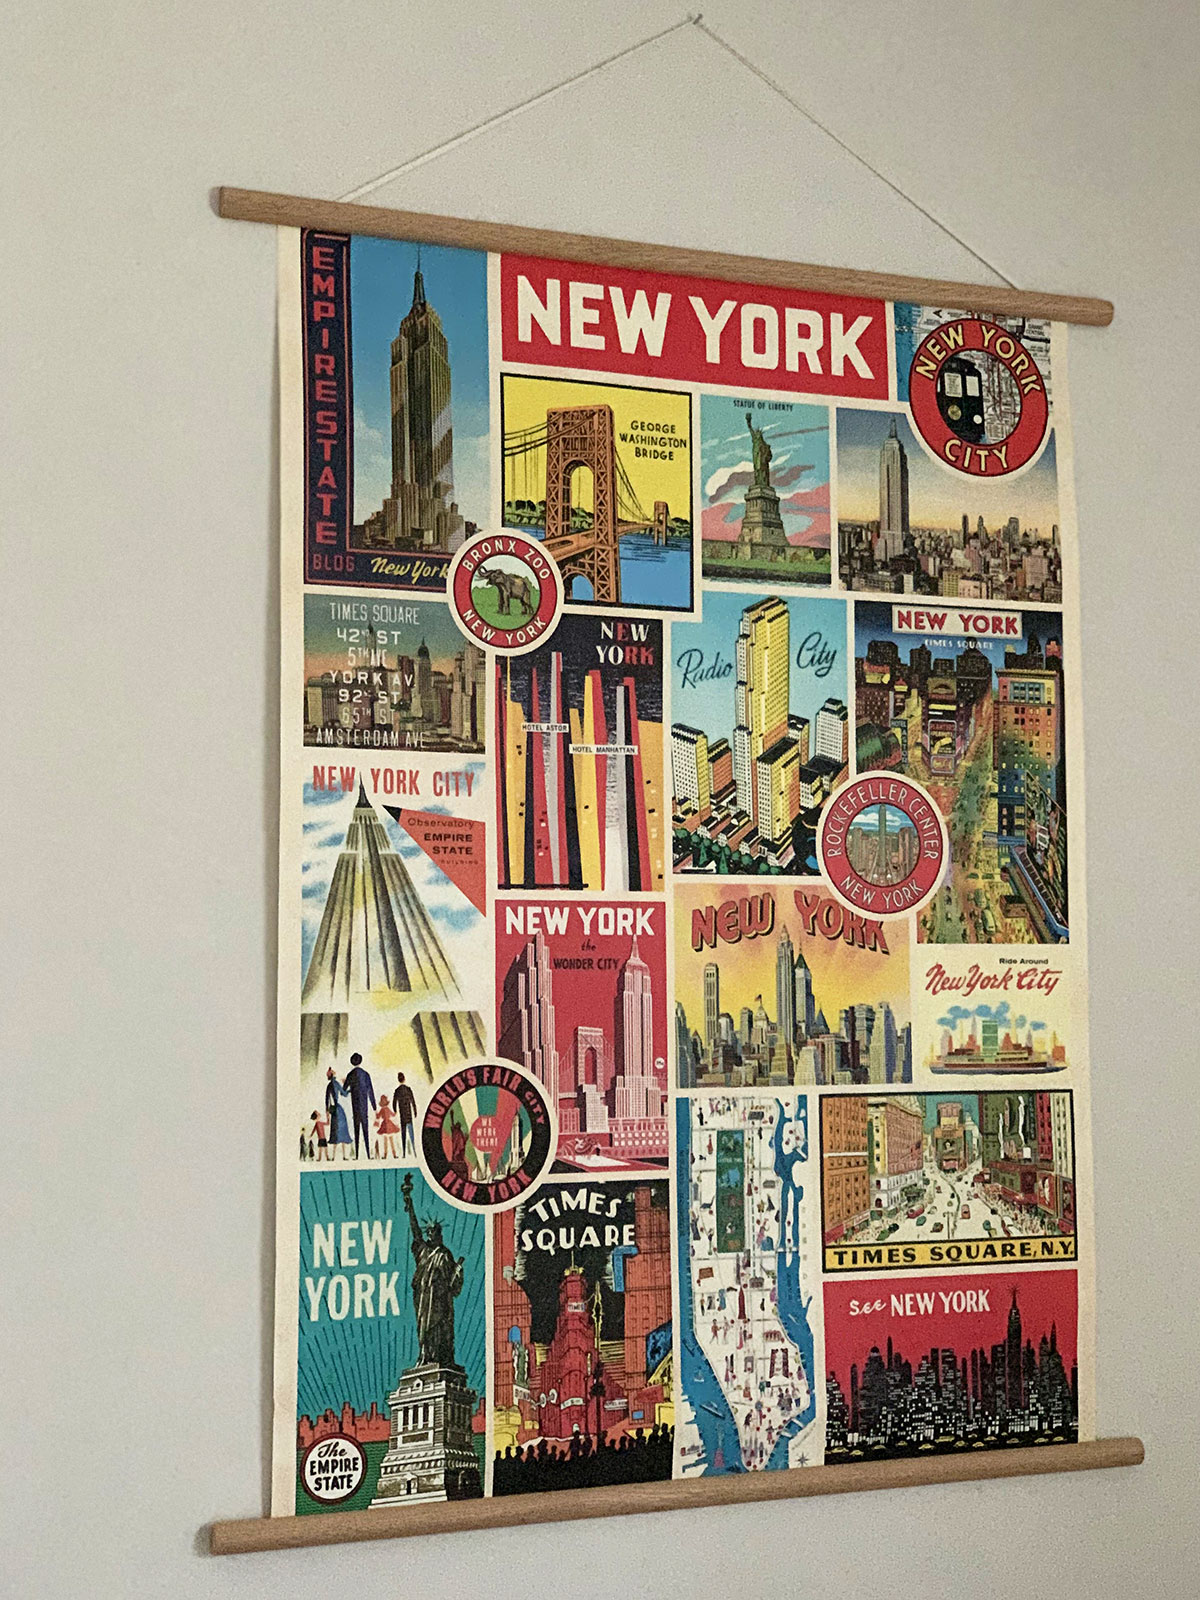 Vintage inspired New York themed poster by Cavallini & Co.